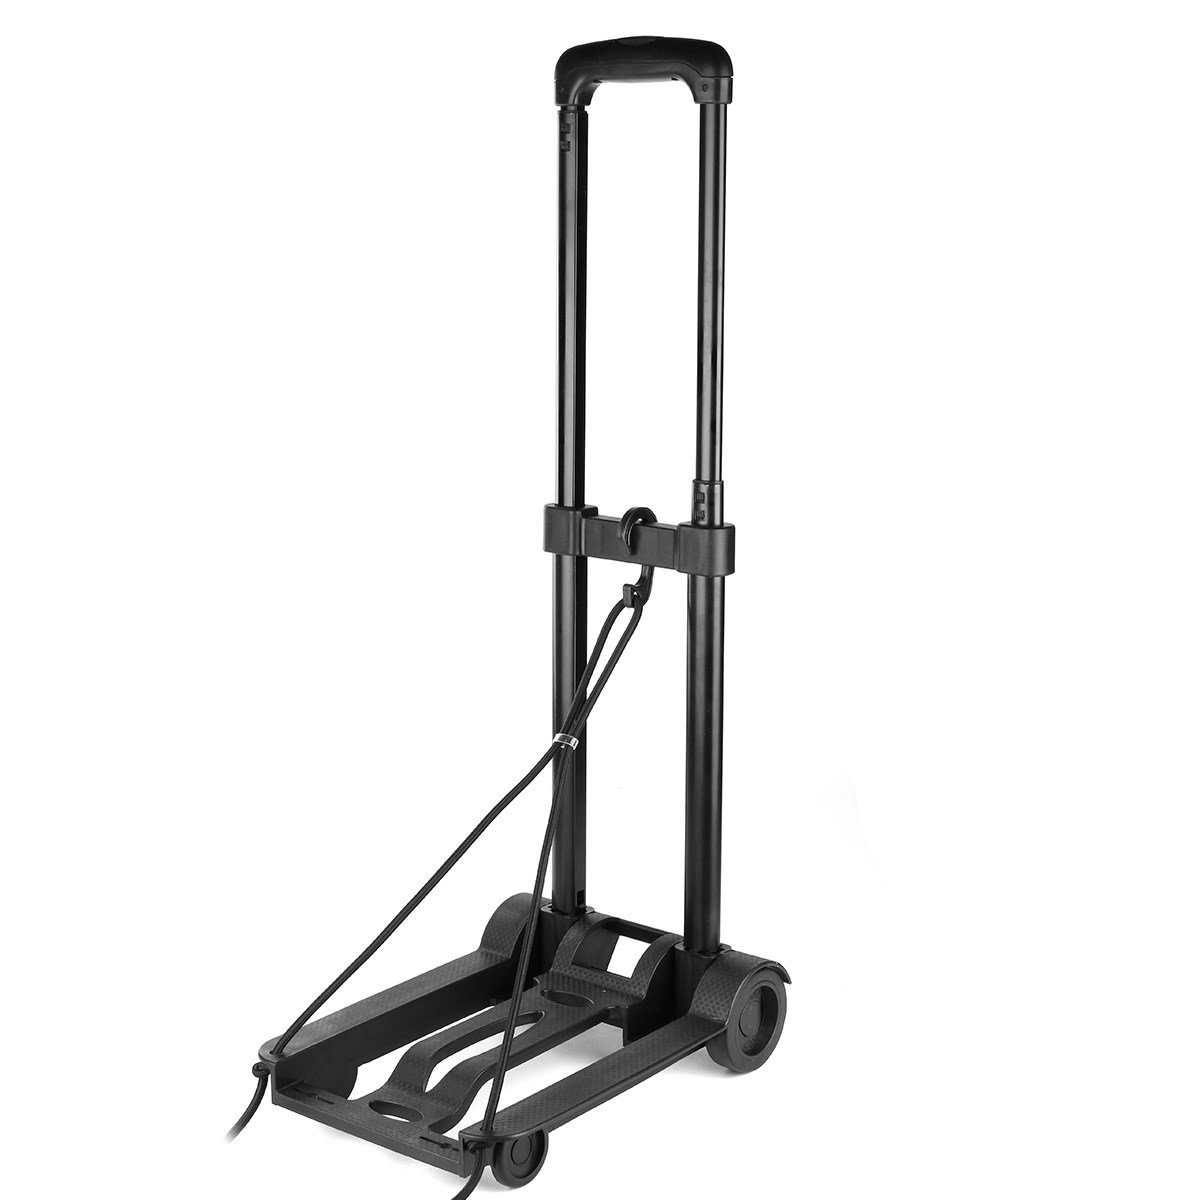 Folding Handcart Adjustable Hand Luguagge Trolley Cart With Wheel Metal Warehouse Sack Height Home Shopping Travel